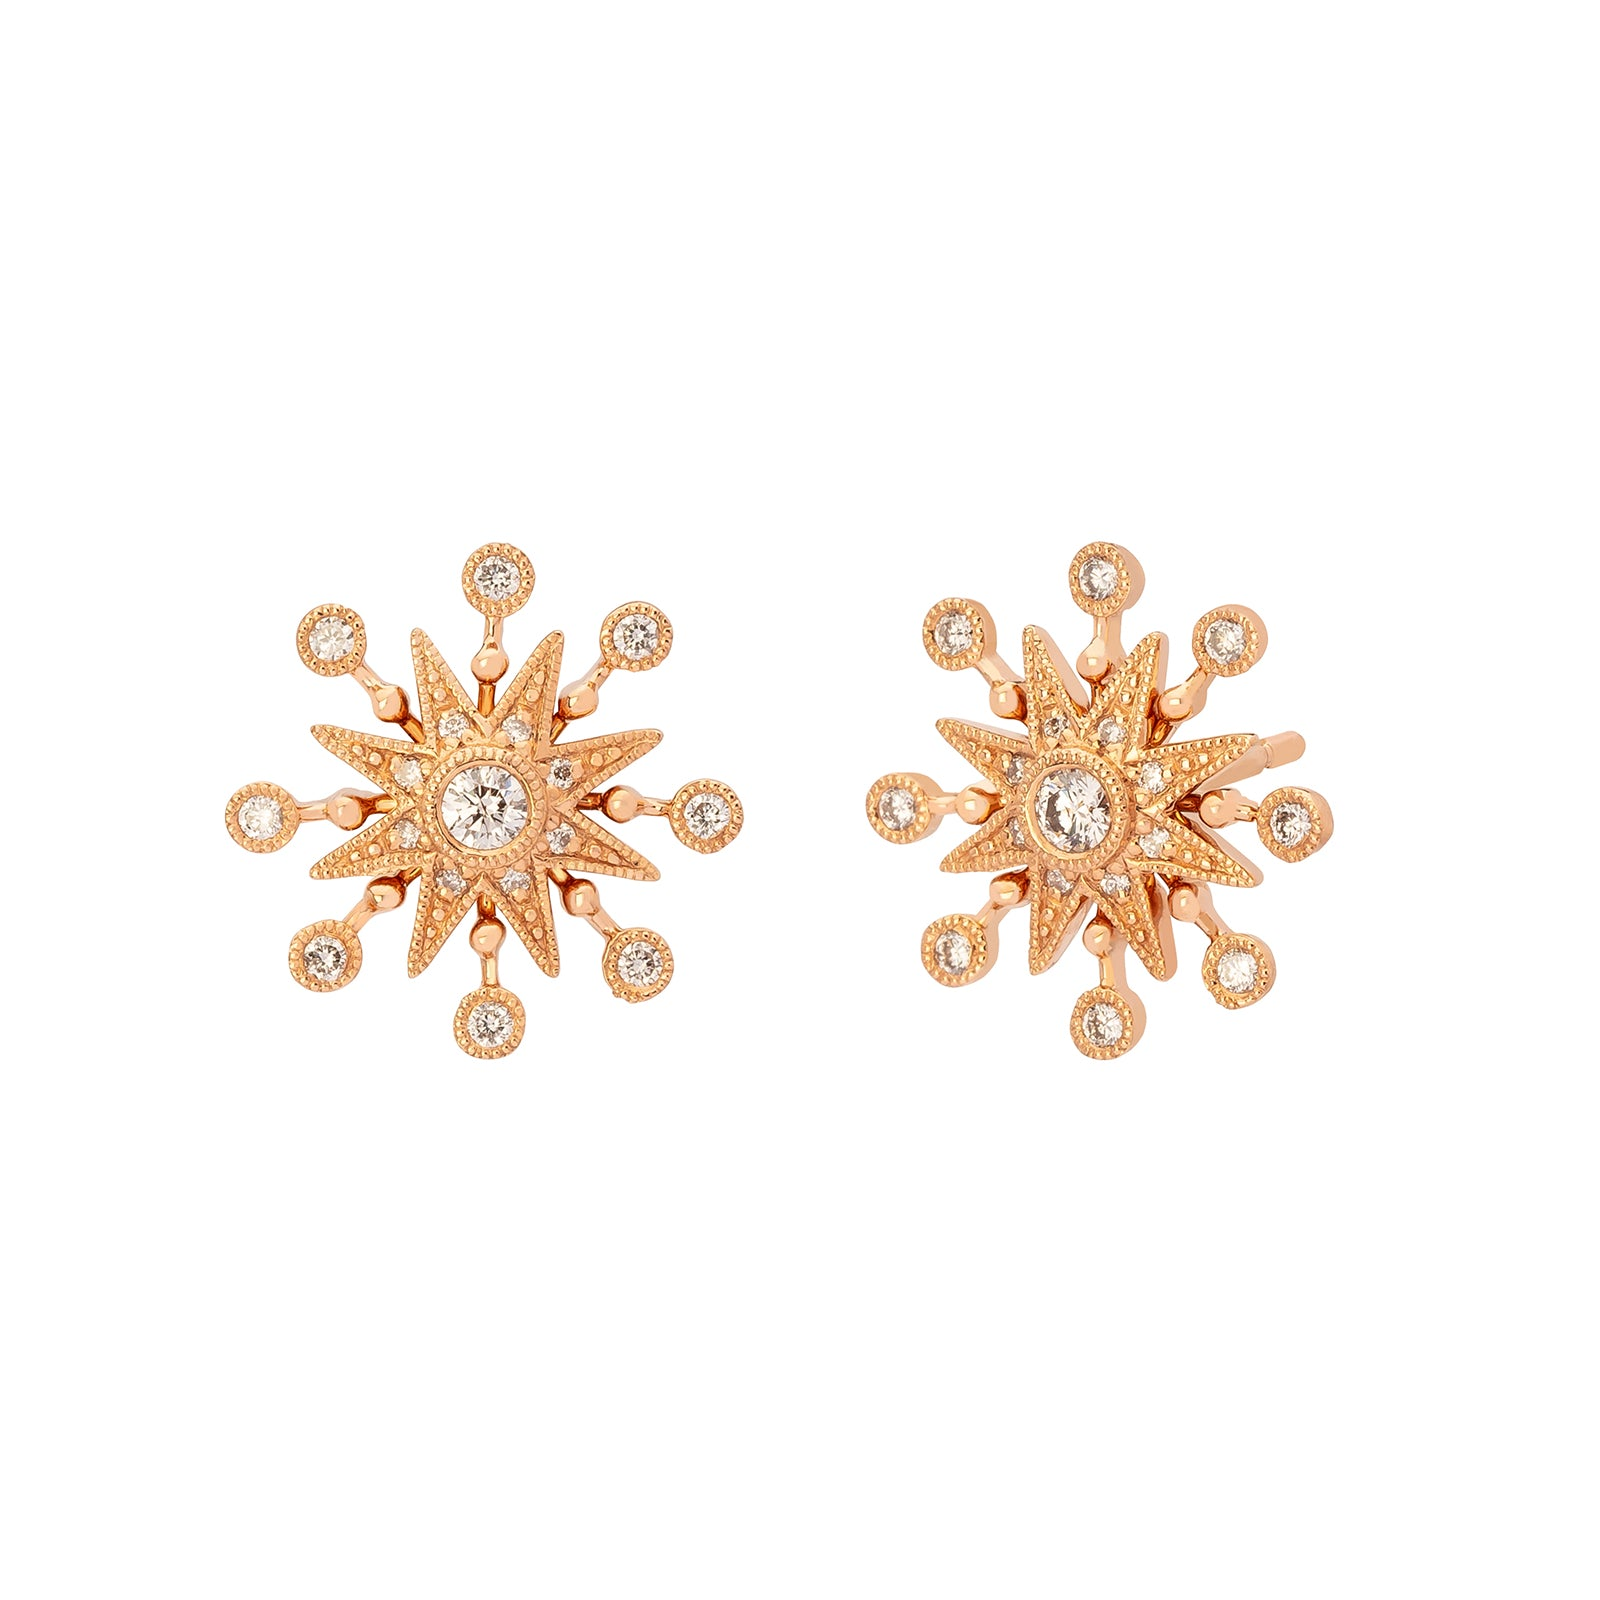 Colette Twinkle Star Studs - White Diamond - Earrings - Broken English Jewelry